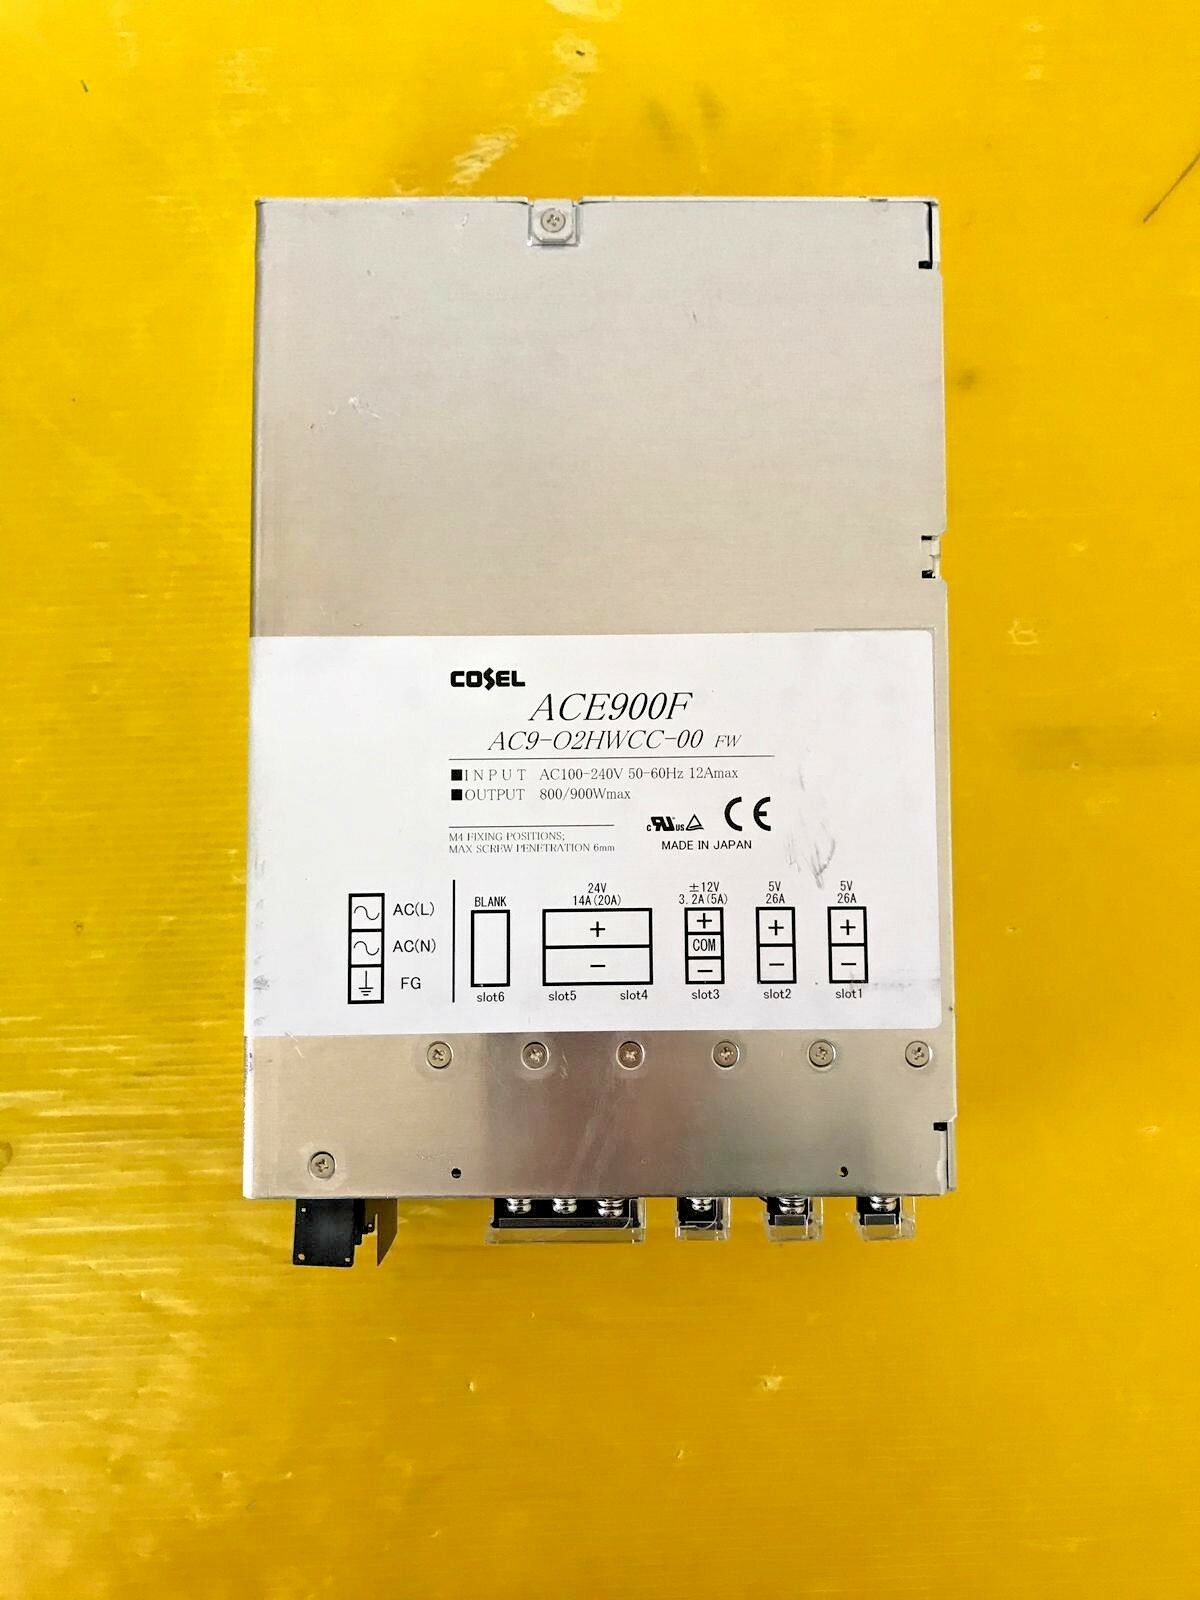 COSEL ACE900F AC9-02HWXX-00 FW Power Supply